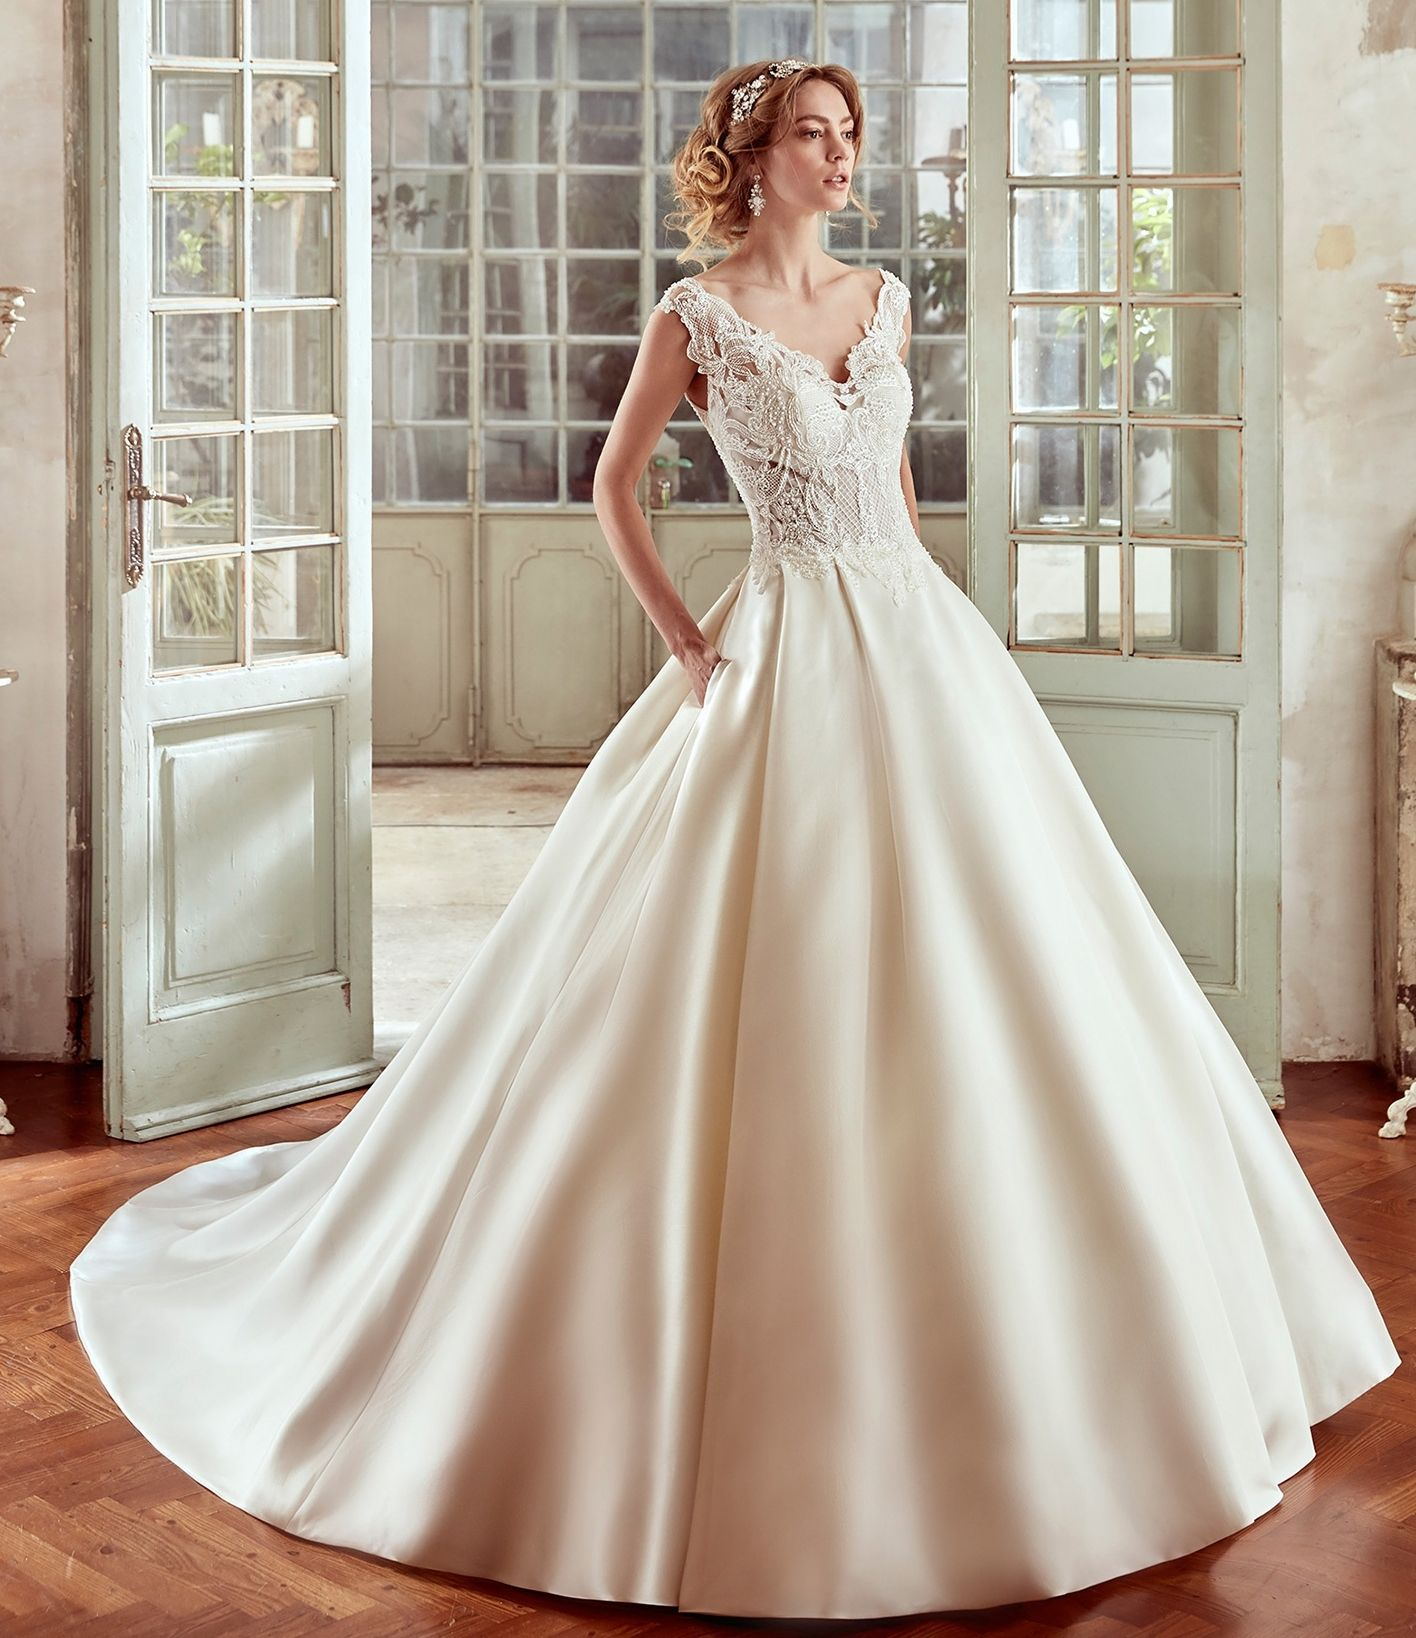 Clearance sample dress! Style 17024 by Nicole now on sale